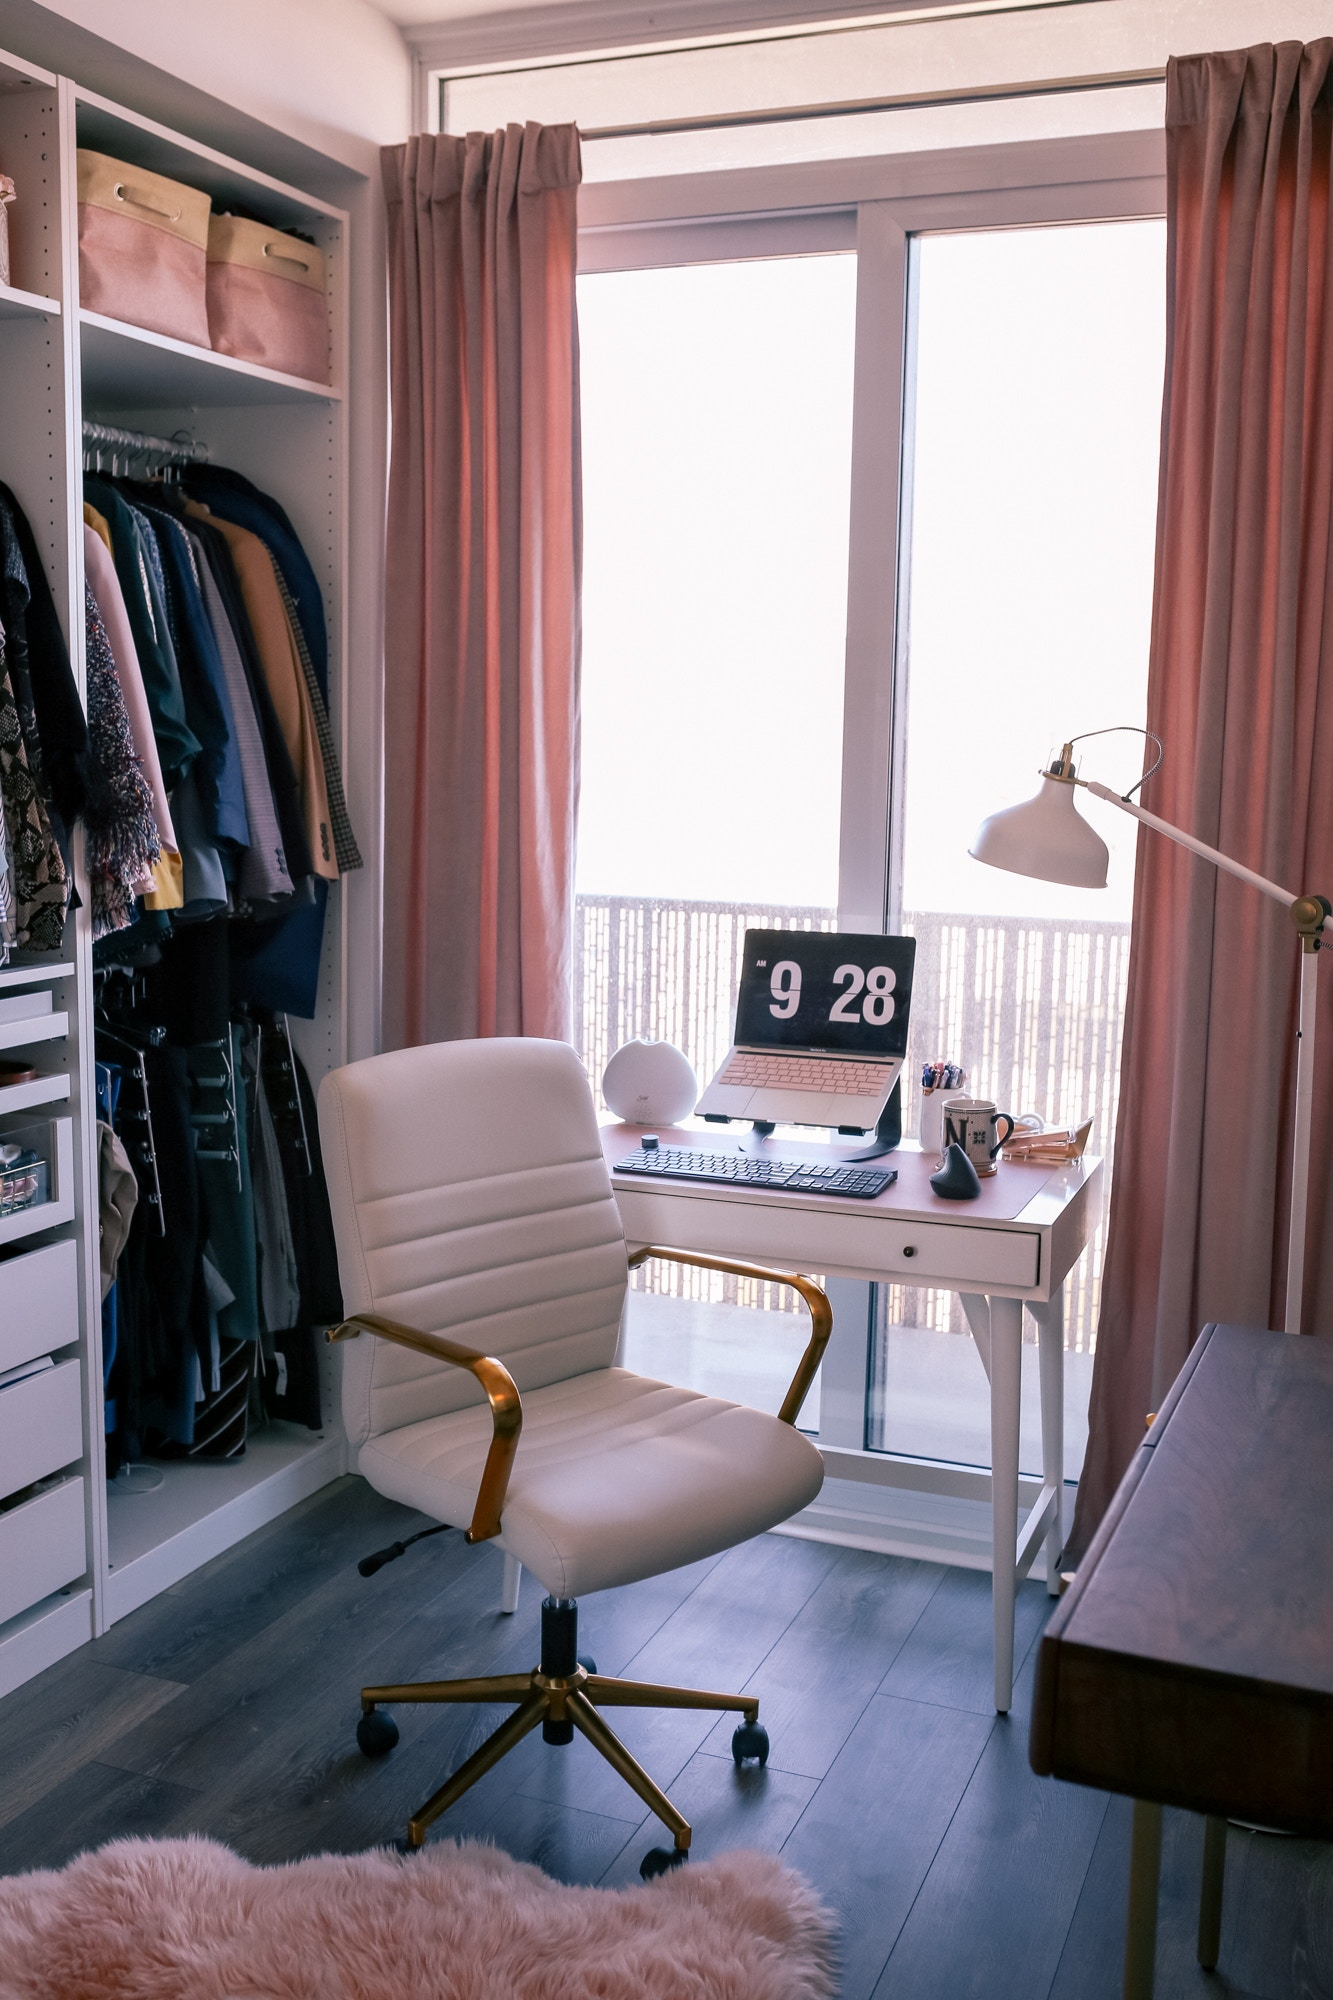 Home Office Decor Tips: Creating a serene space for productivity during self-isolation. West Elm Mid-Century Desk, IKEA Pax wardrobe & a gold desk chair complete the look.